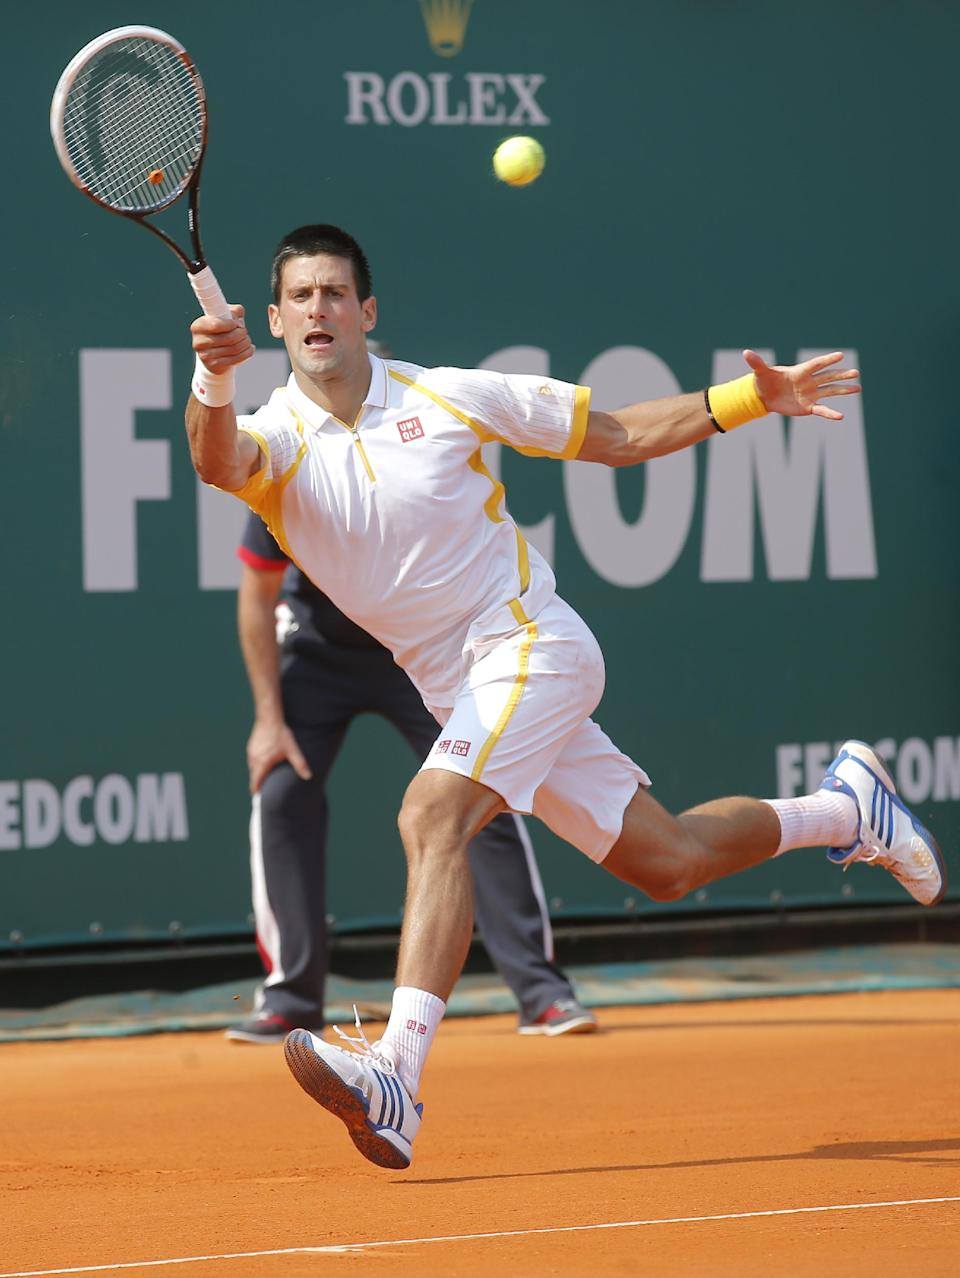 Novak Djokovic of Serbia plays a return to Mikhail Youzhny of Russia during their match of the Monte Carlo Tennis Masters tournament in Monaco, Wednesday, April 17, 2013. (AP Photo/Lionel Cironneau)